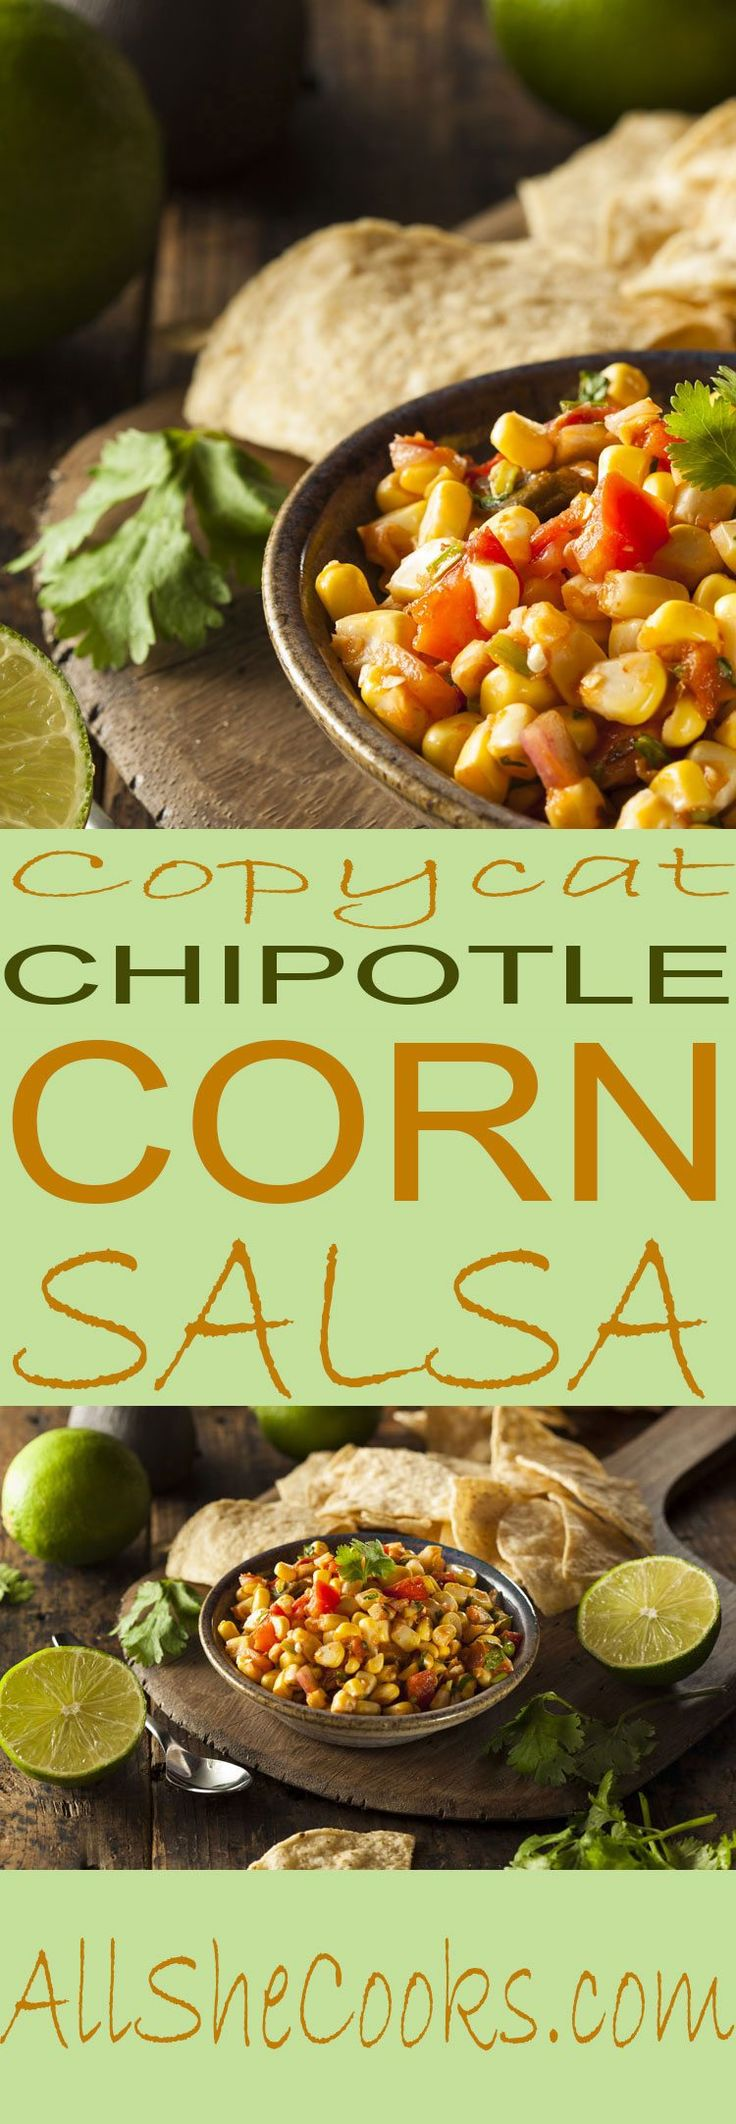 Copycat Chipotle Corn Salsa is a festive recipe perfect to serve with chips or alongside your favorite Mexican recipe. Healthy corn salsa is a great way to get in your vegetables.